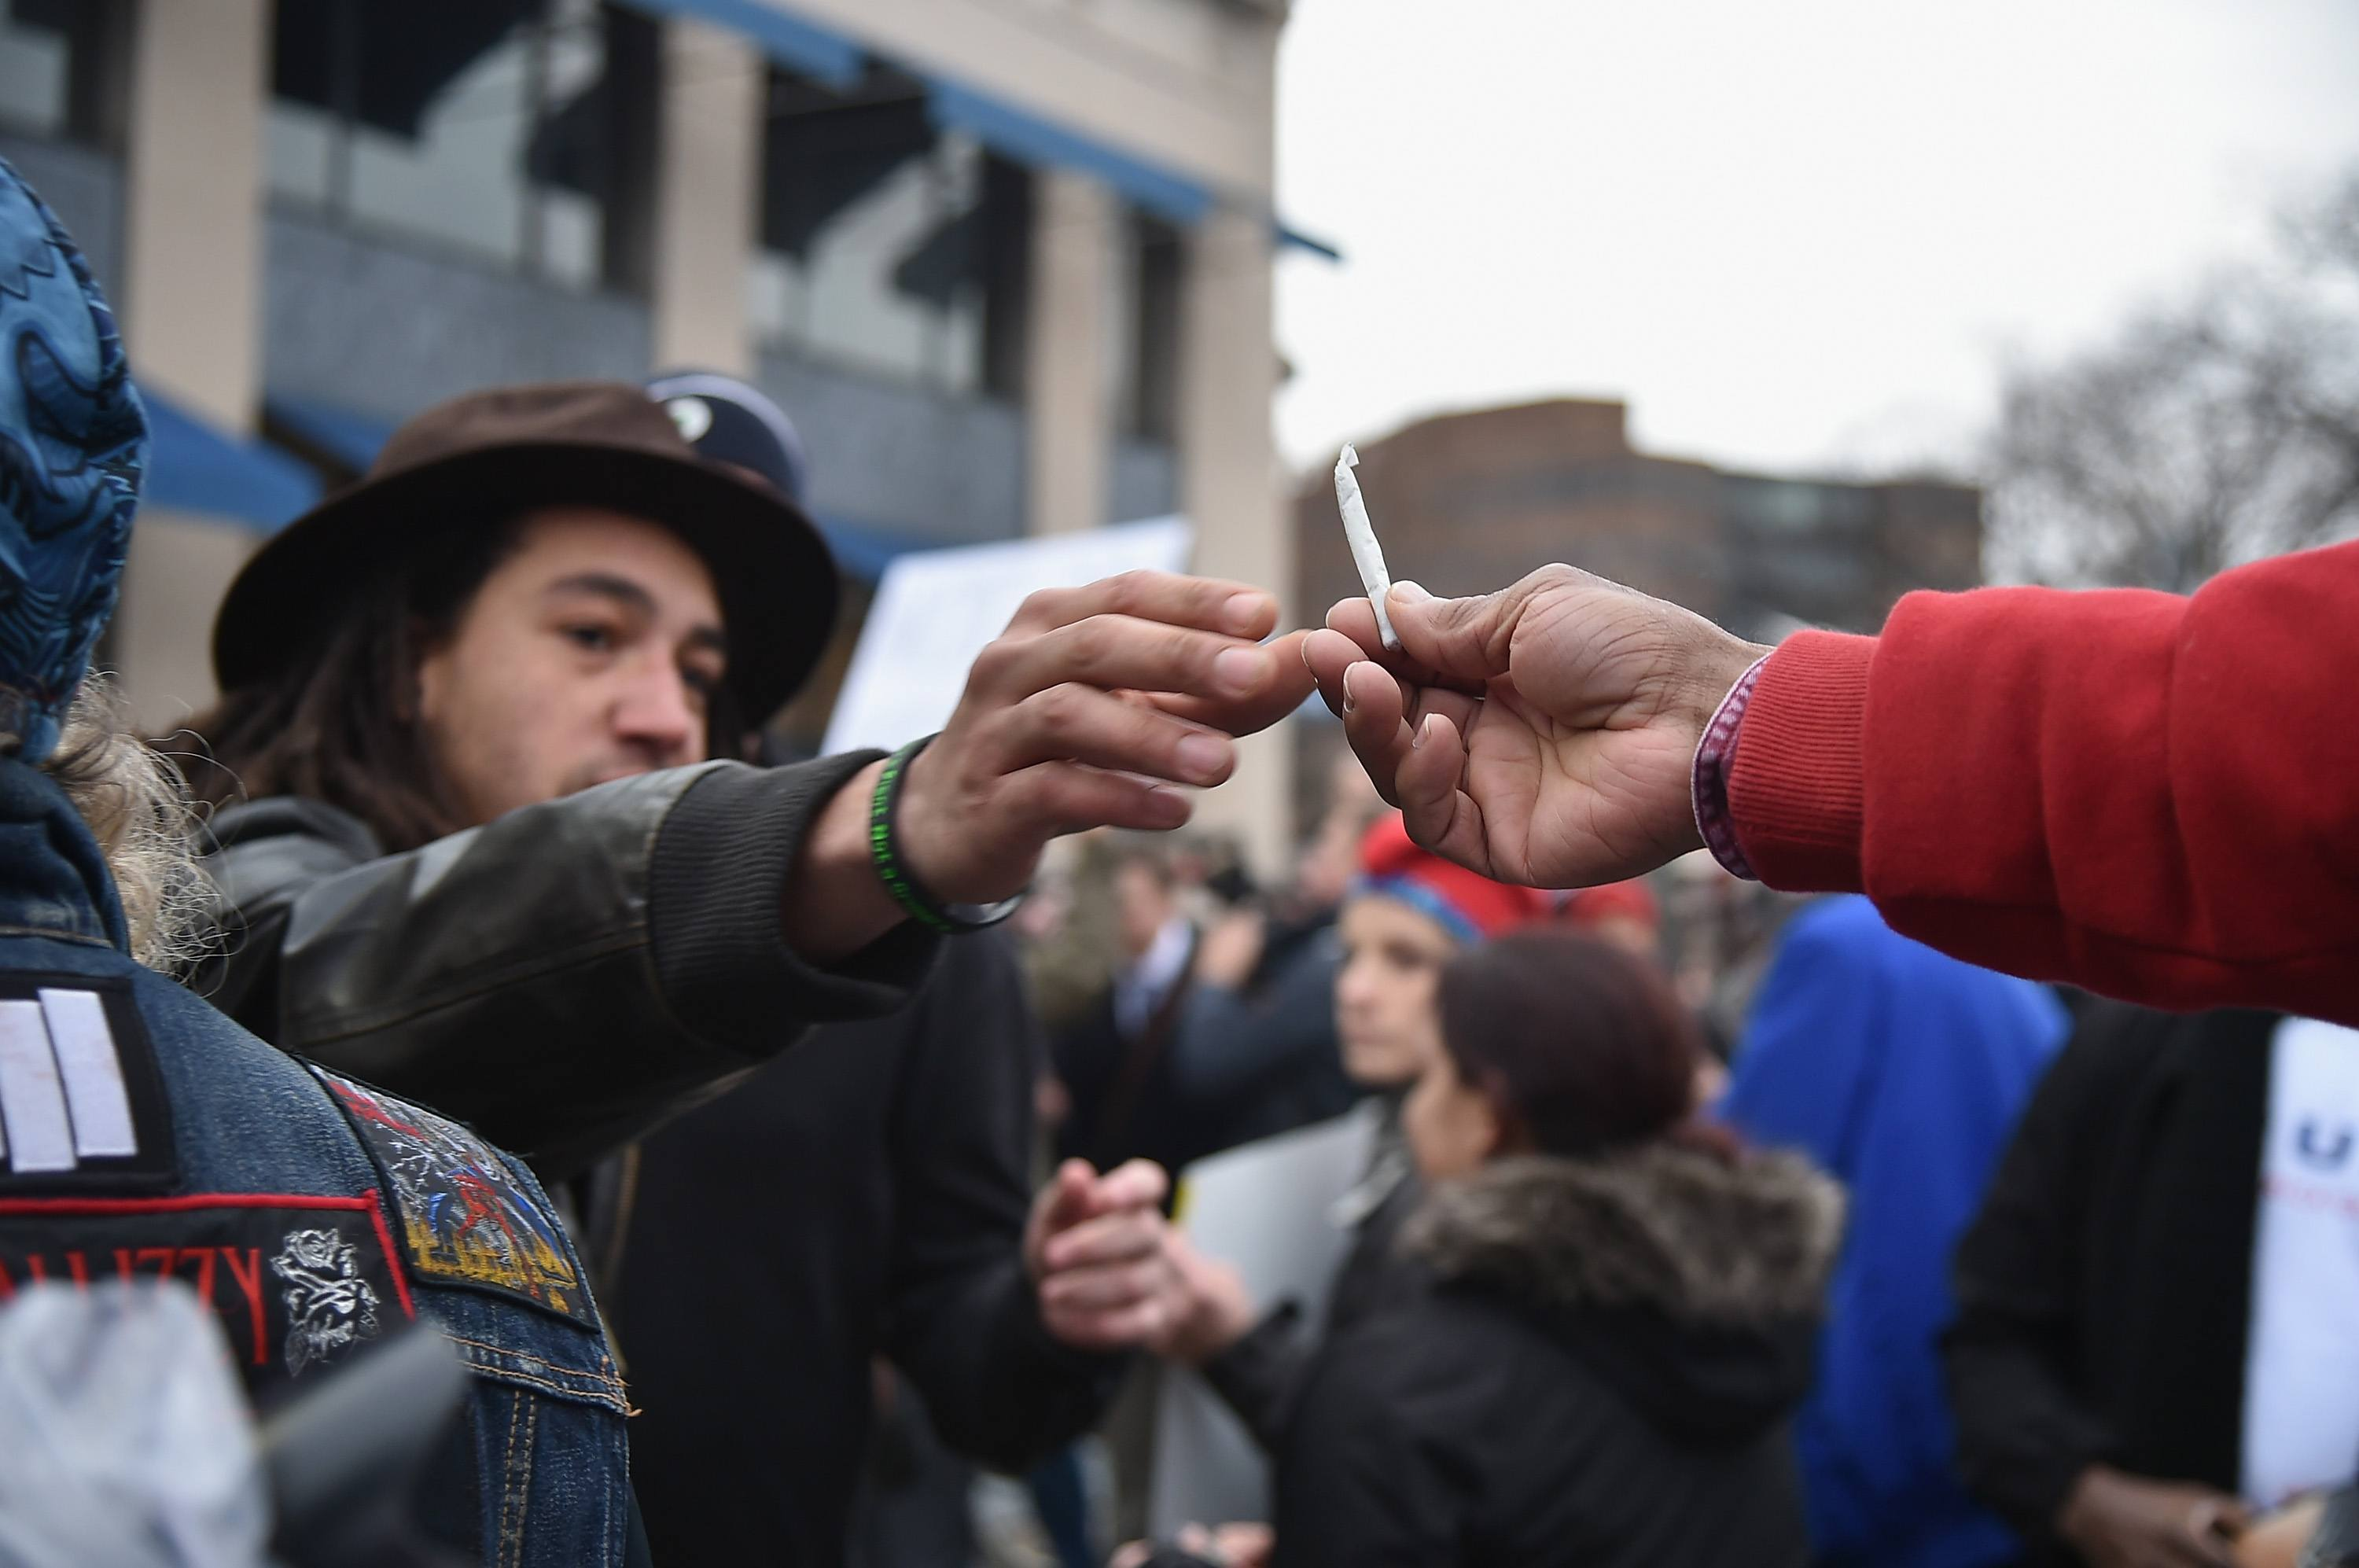 Men pass a joint at a pro-pot rally